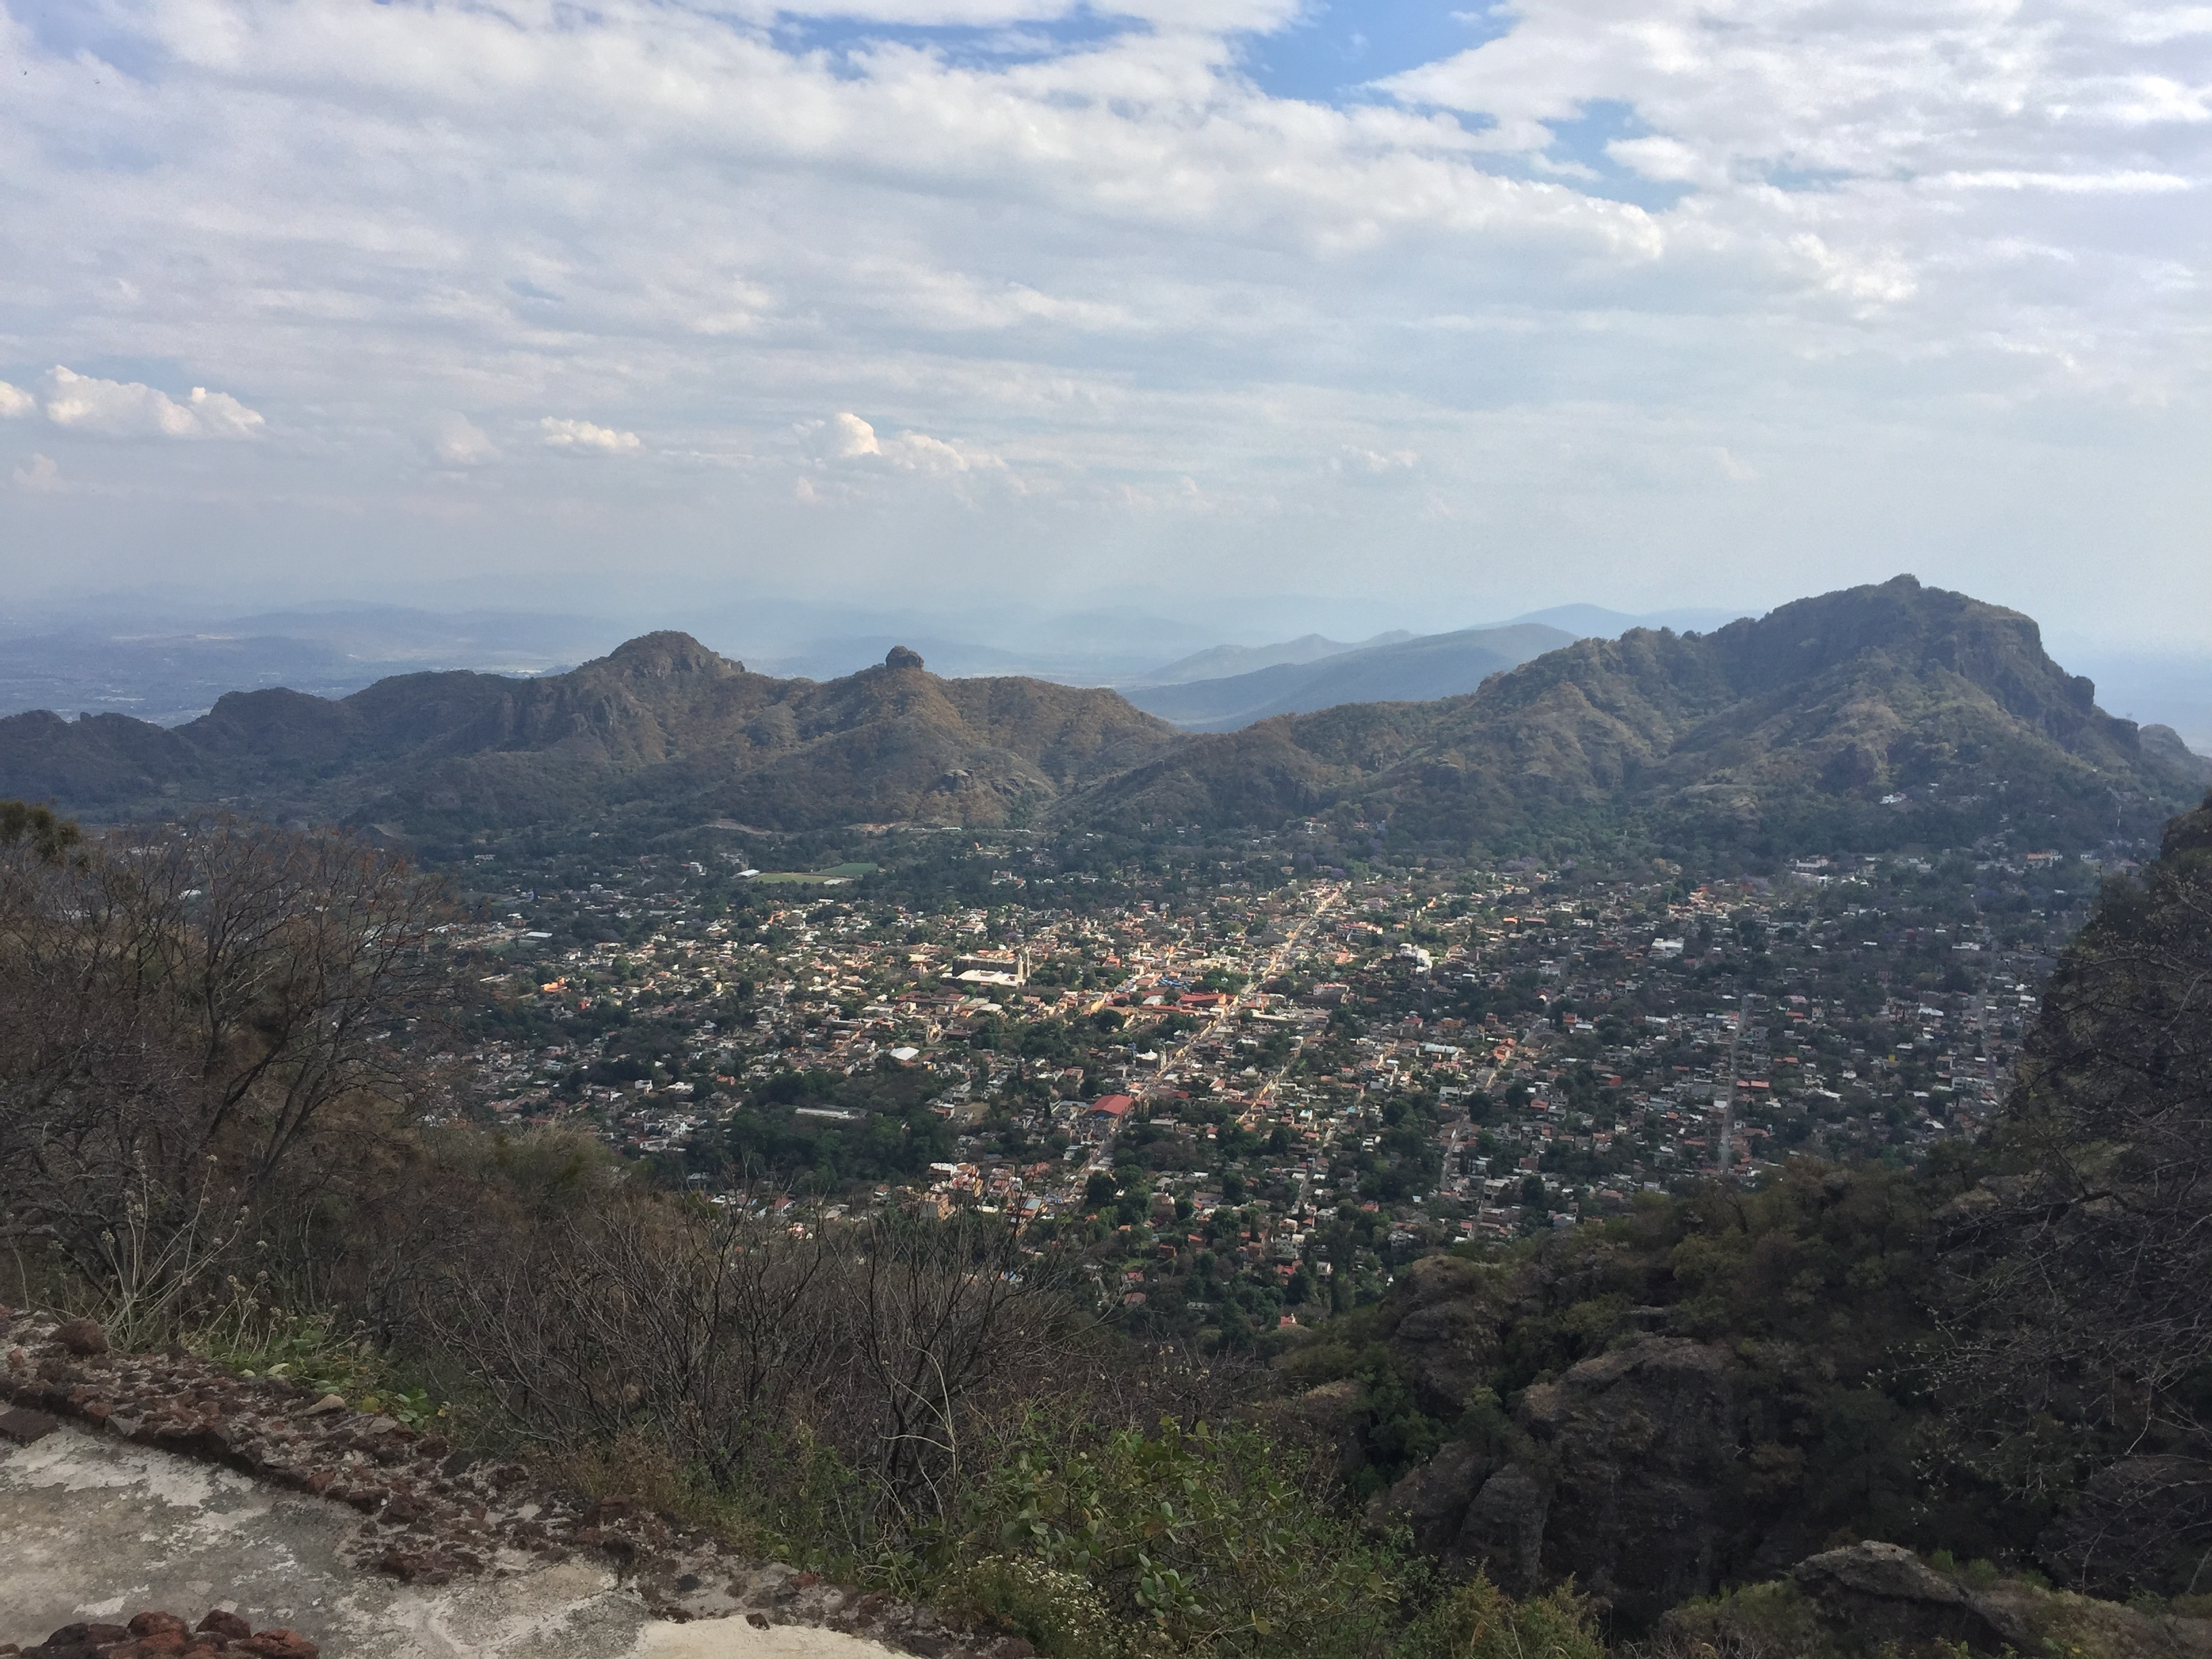 View of Tepoztlan from above.